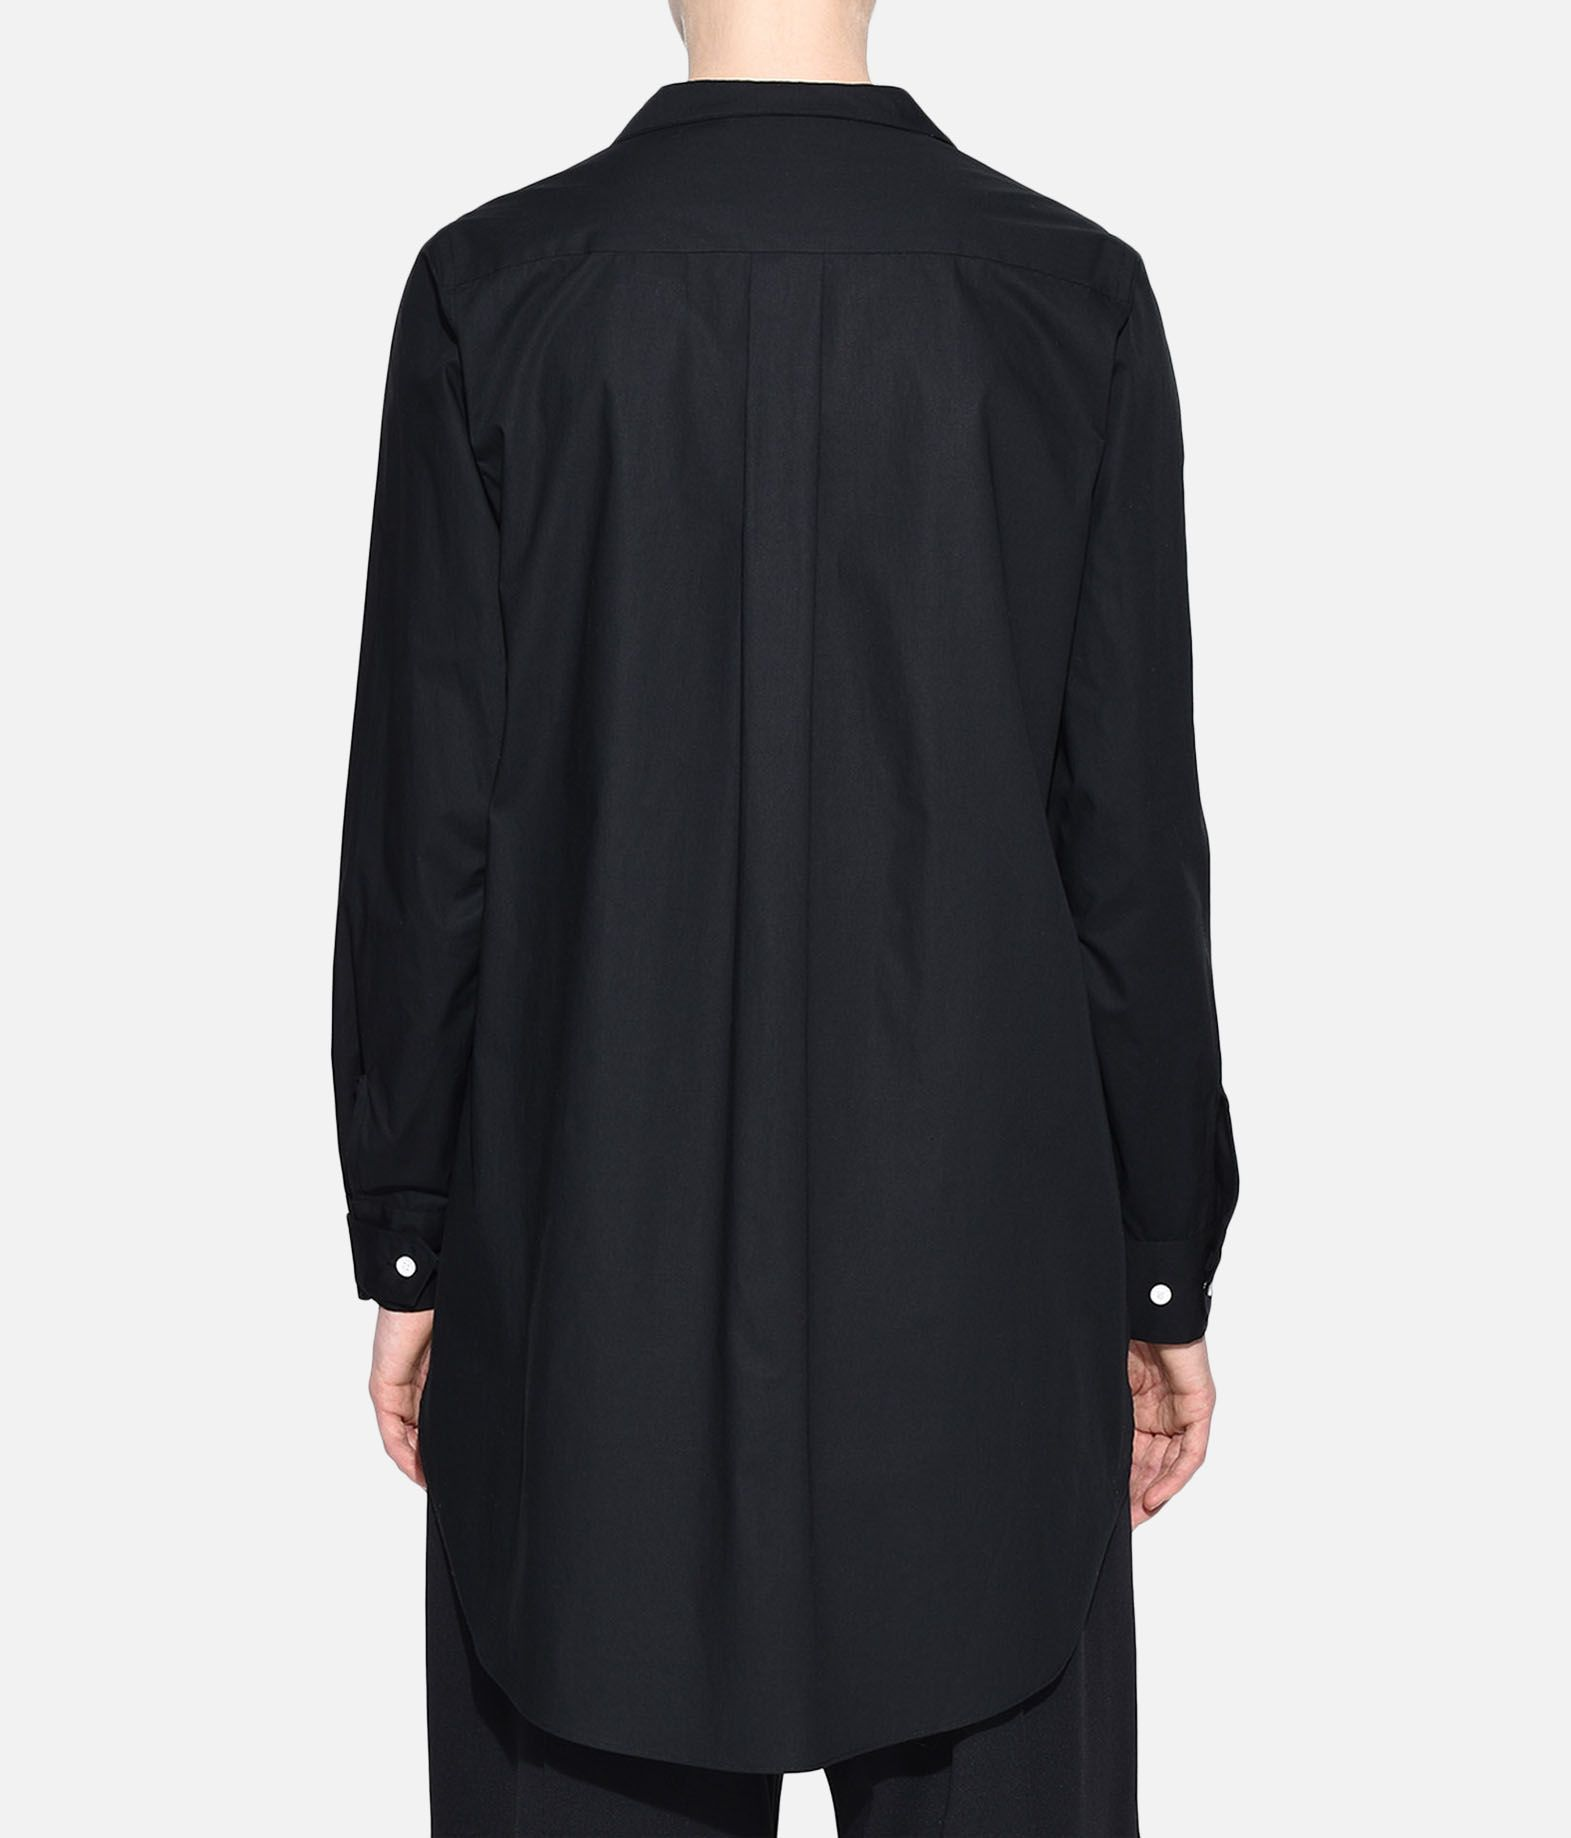 Y-3 Y-3 Tie-Cord Shirt Long sleeve shirt Woman d